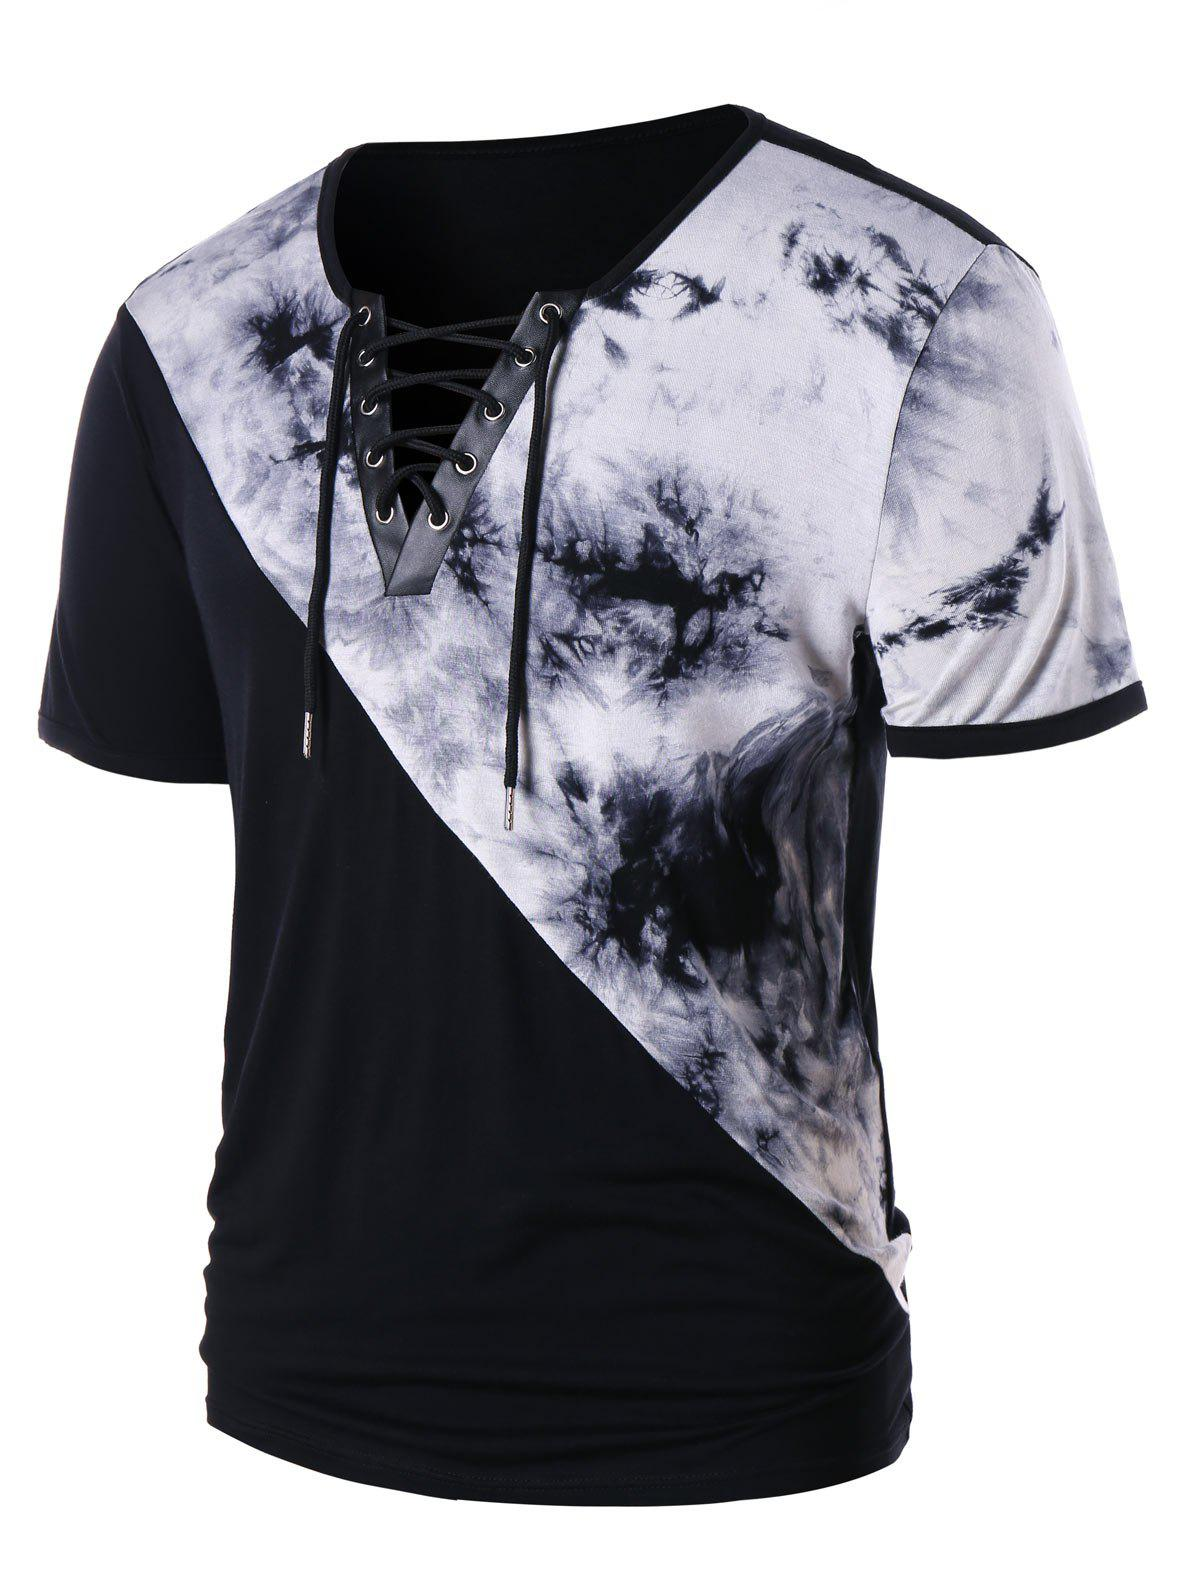 Cheap Lace Up Tie Dye Short Sleeve T-shirt